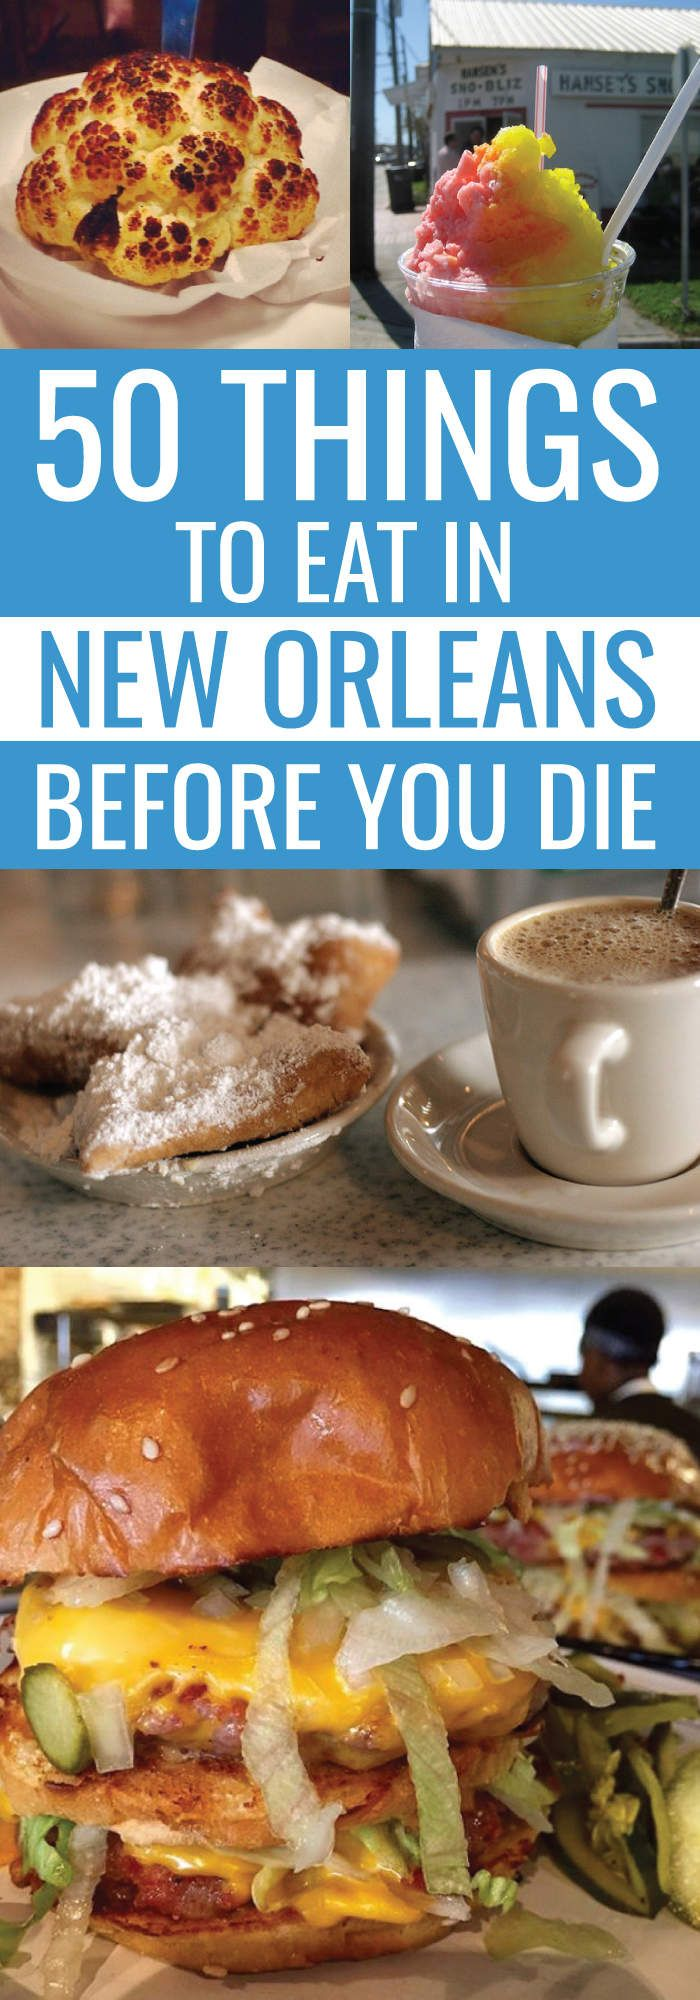 108 best Tulane Eats images on Pinterest | New orleans, Louisiana ...